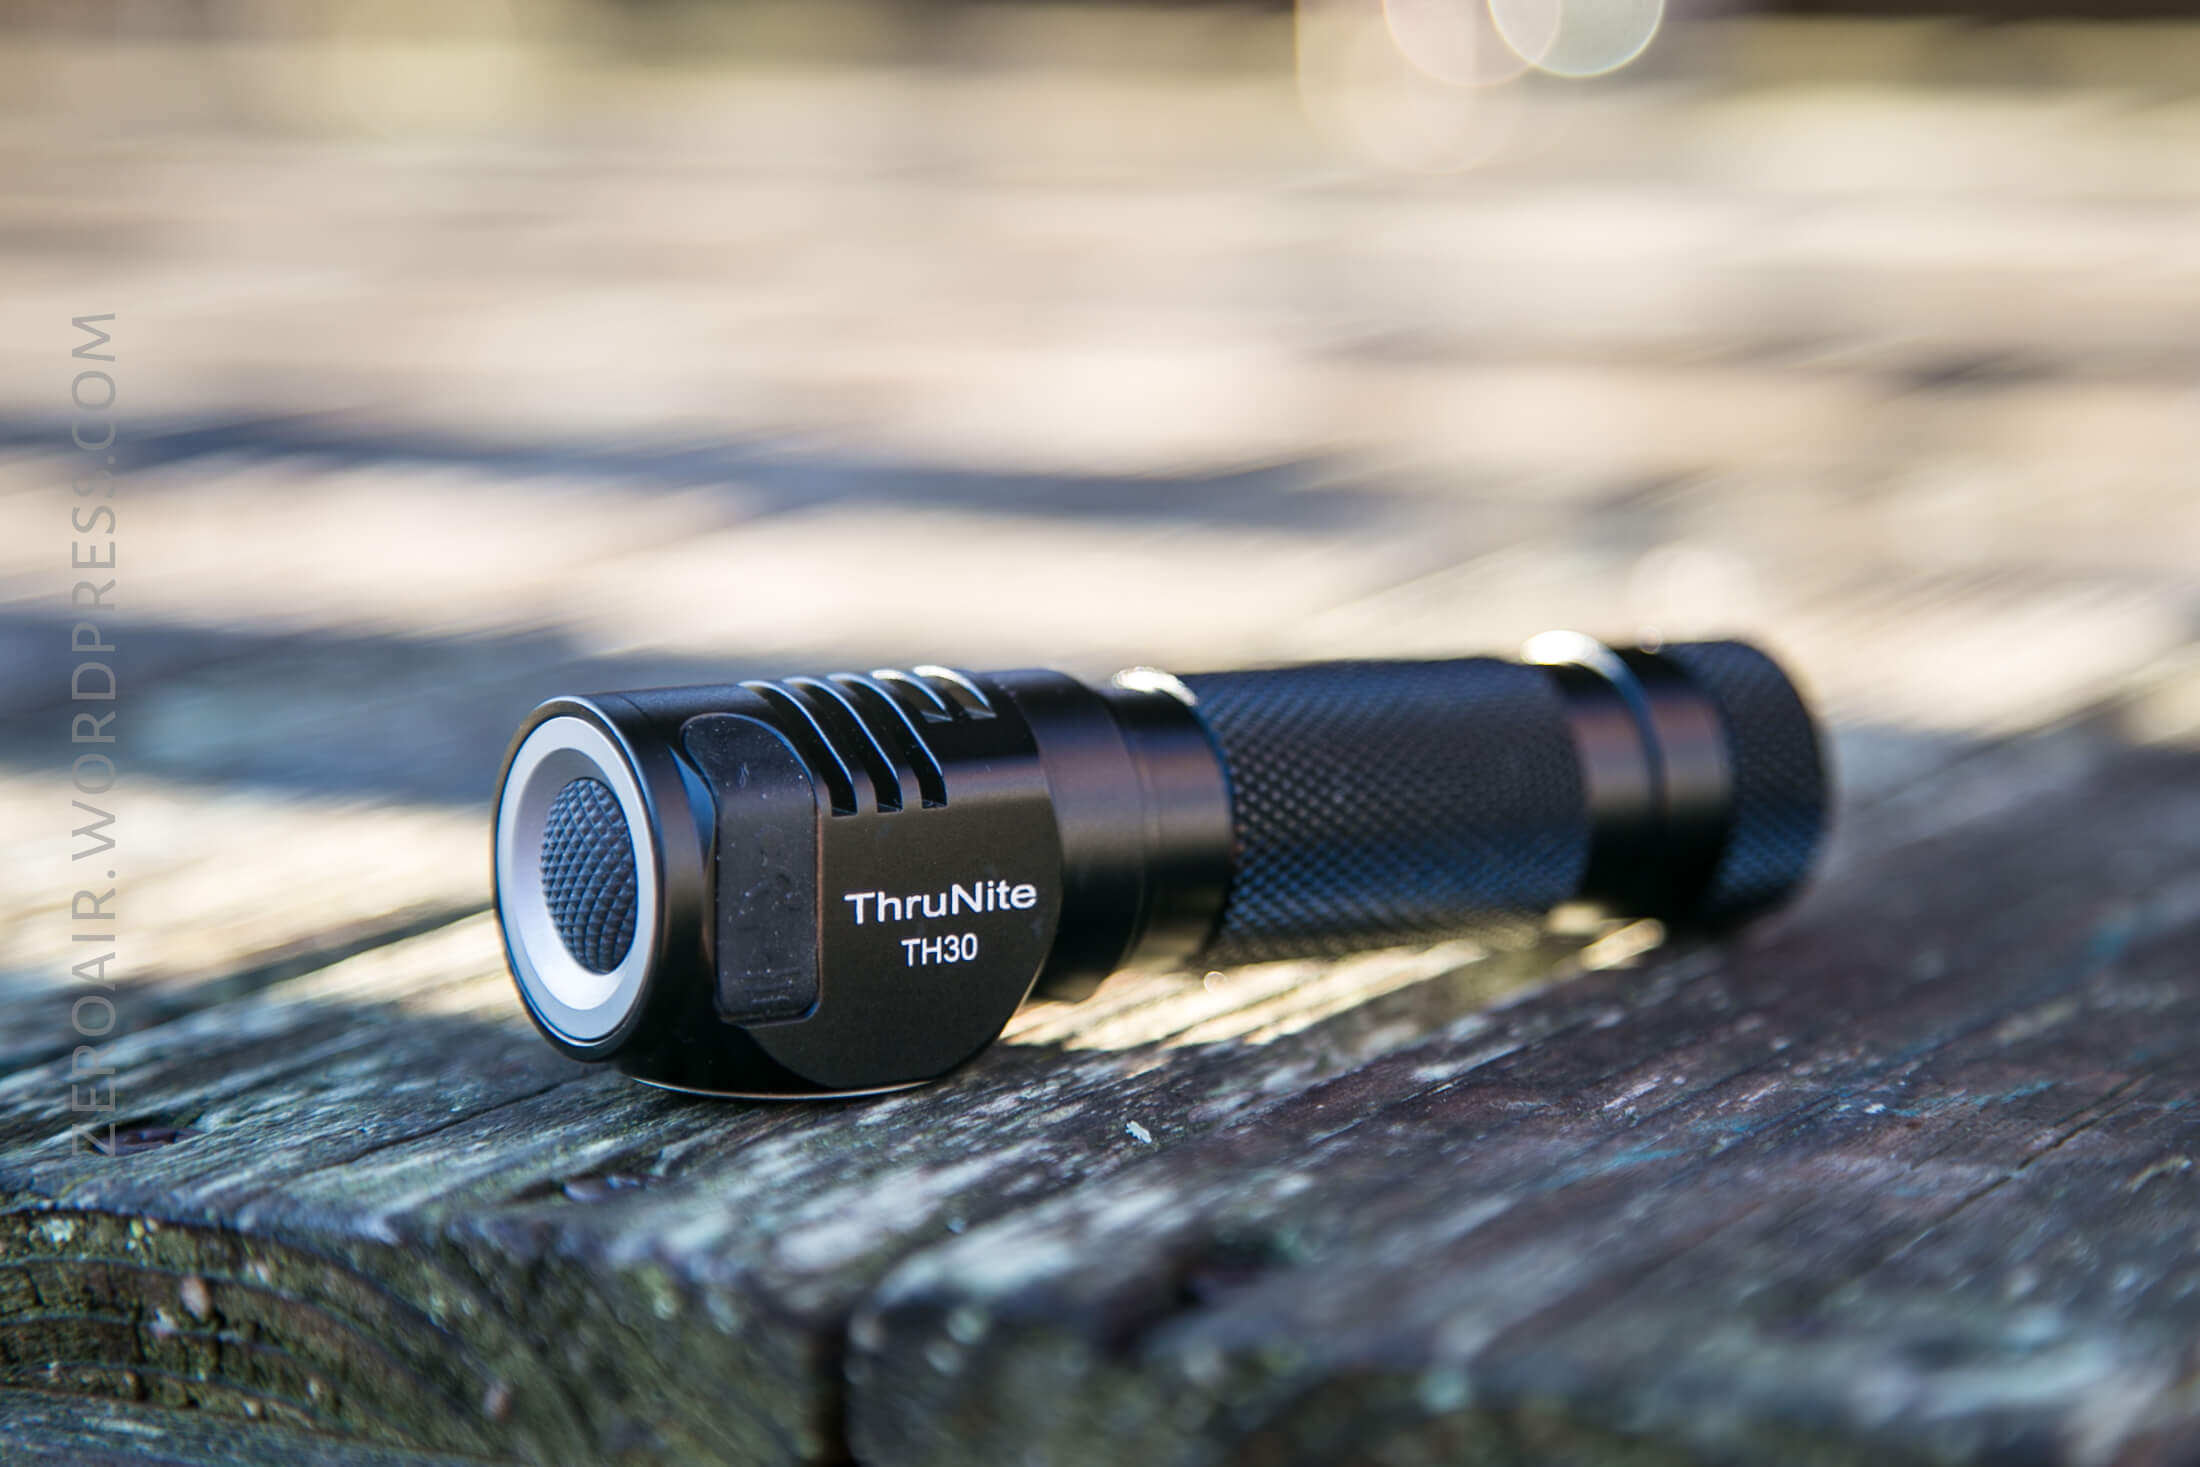 31_zeroair_reviews_thrunite_th30_headlamp.jpg